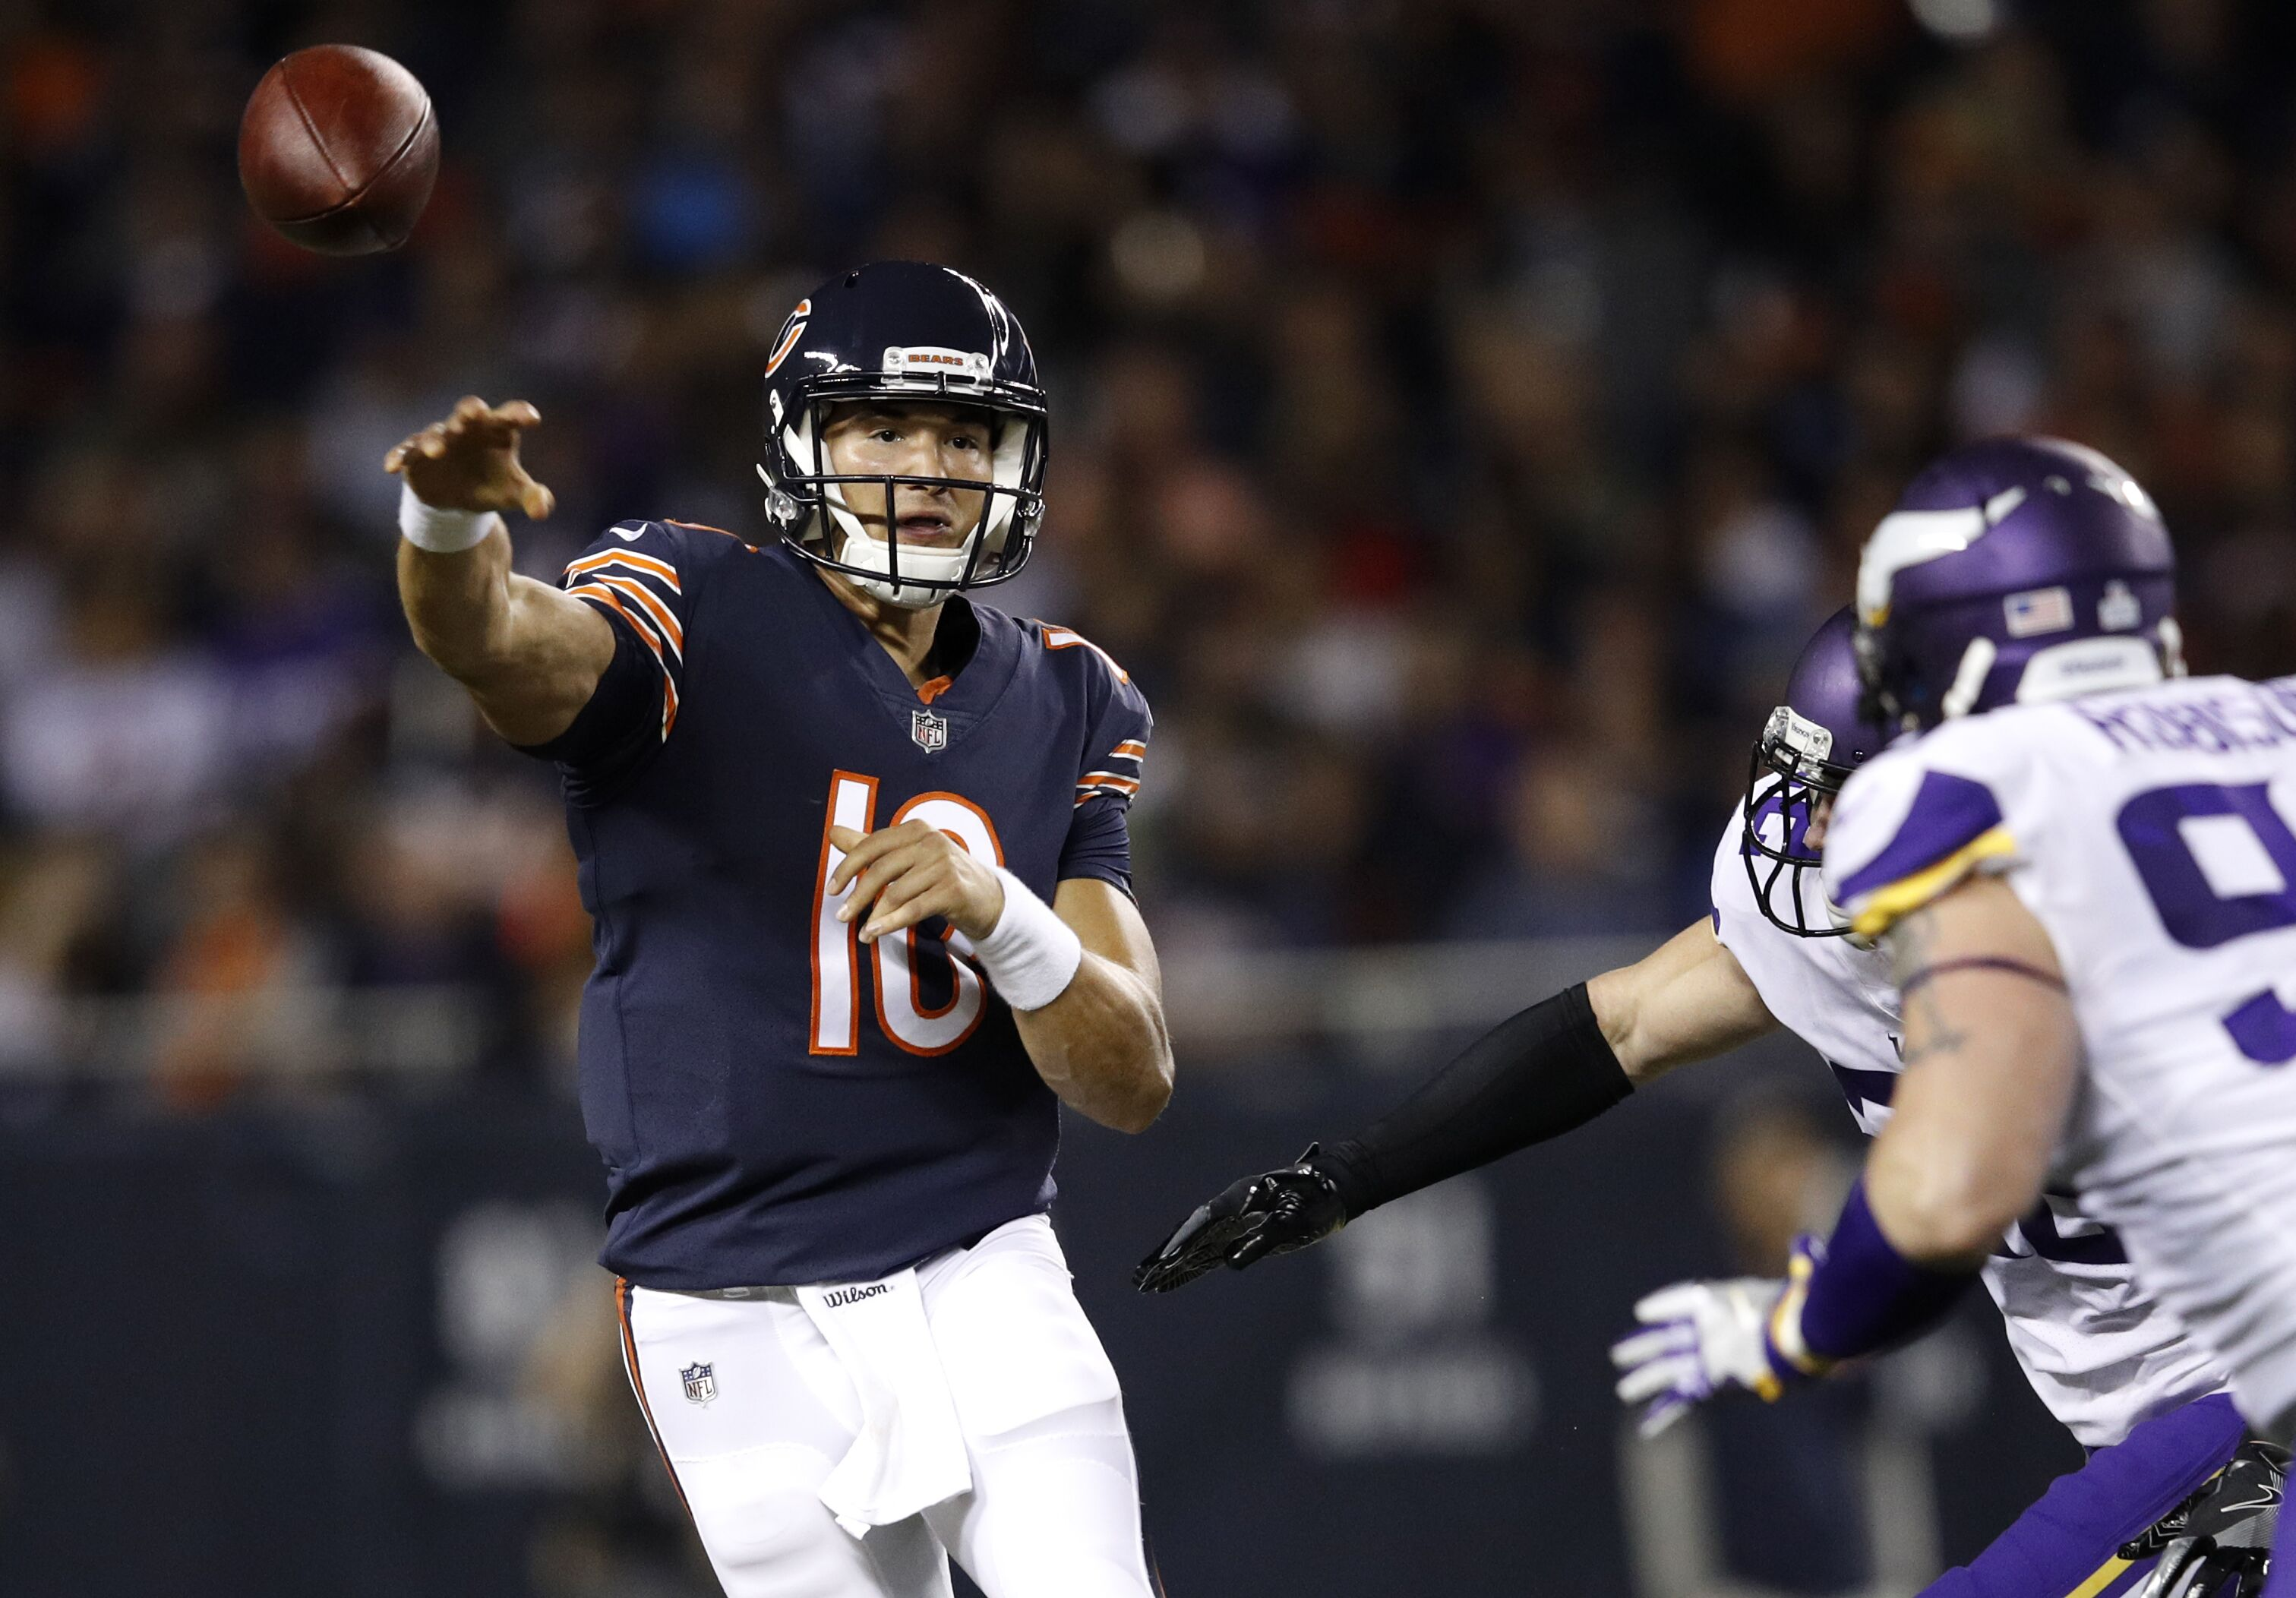 The difference from Mitch Trubisky to Chase Daniel